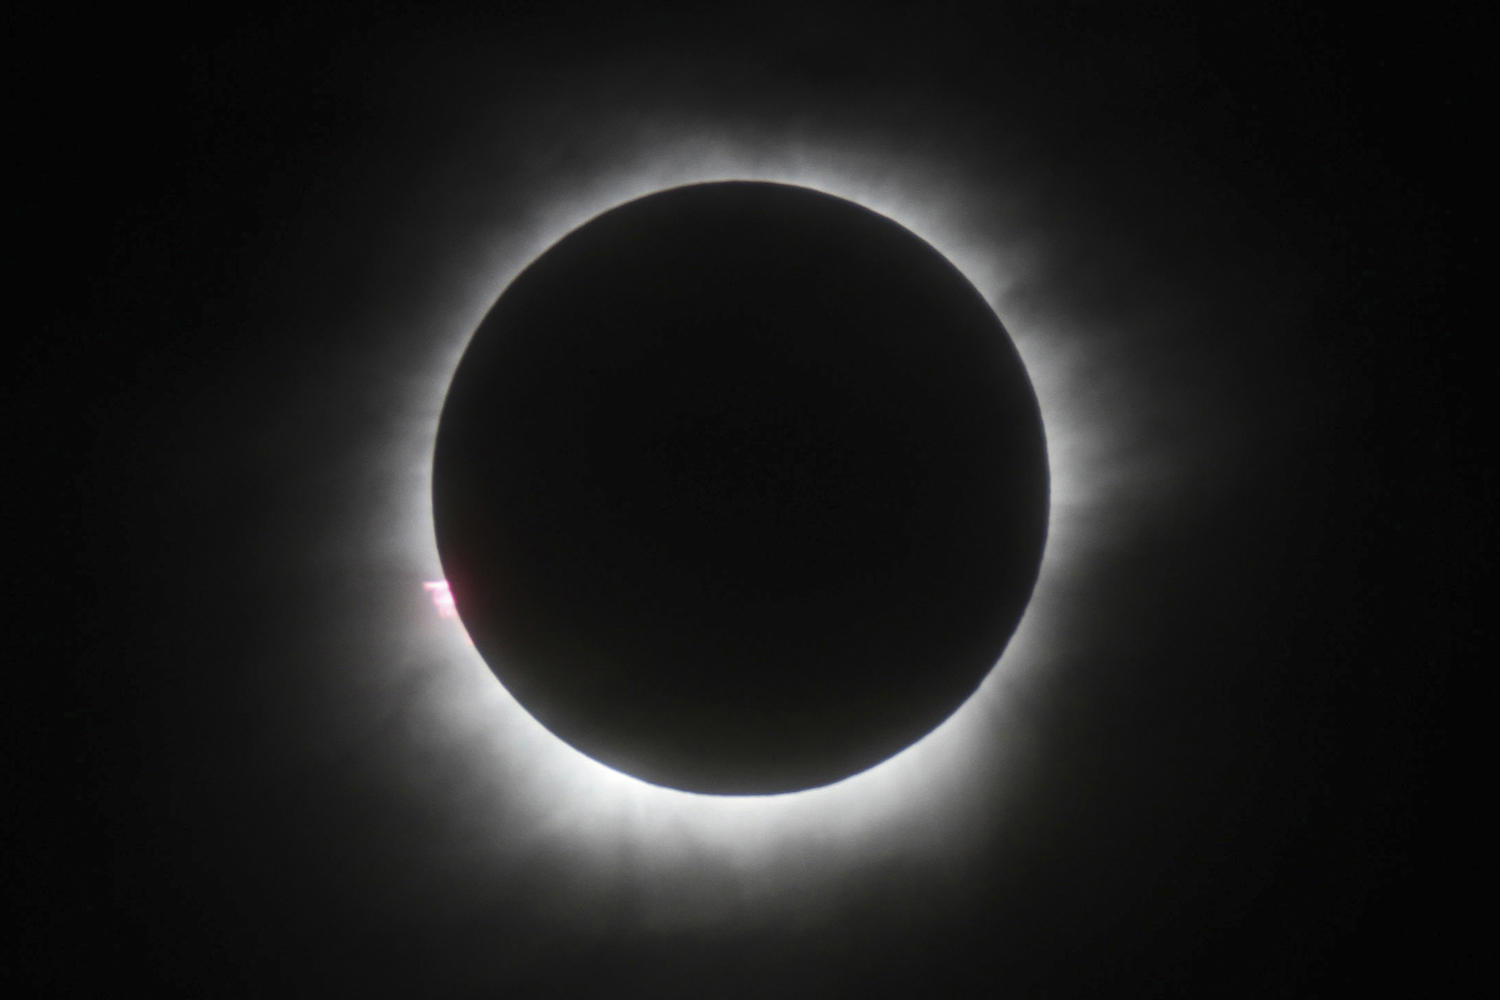 Experience the solar eclipse safely